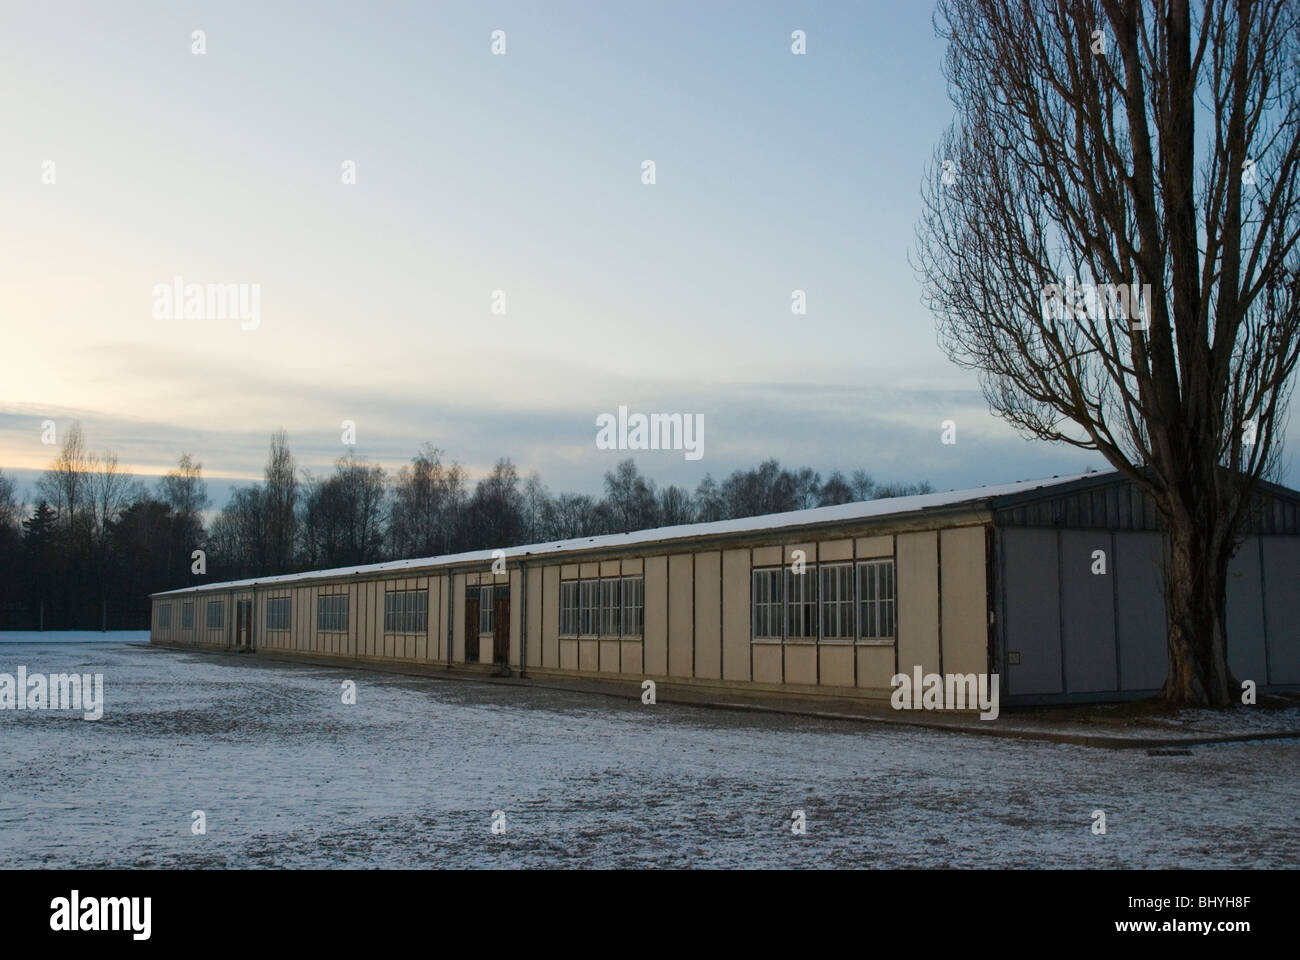 Barrack A at Dachau Concentration Camp Munich Bavaria Germany Europe - Stock Image